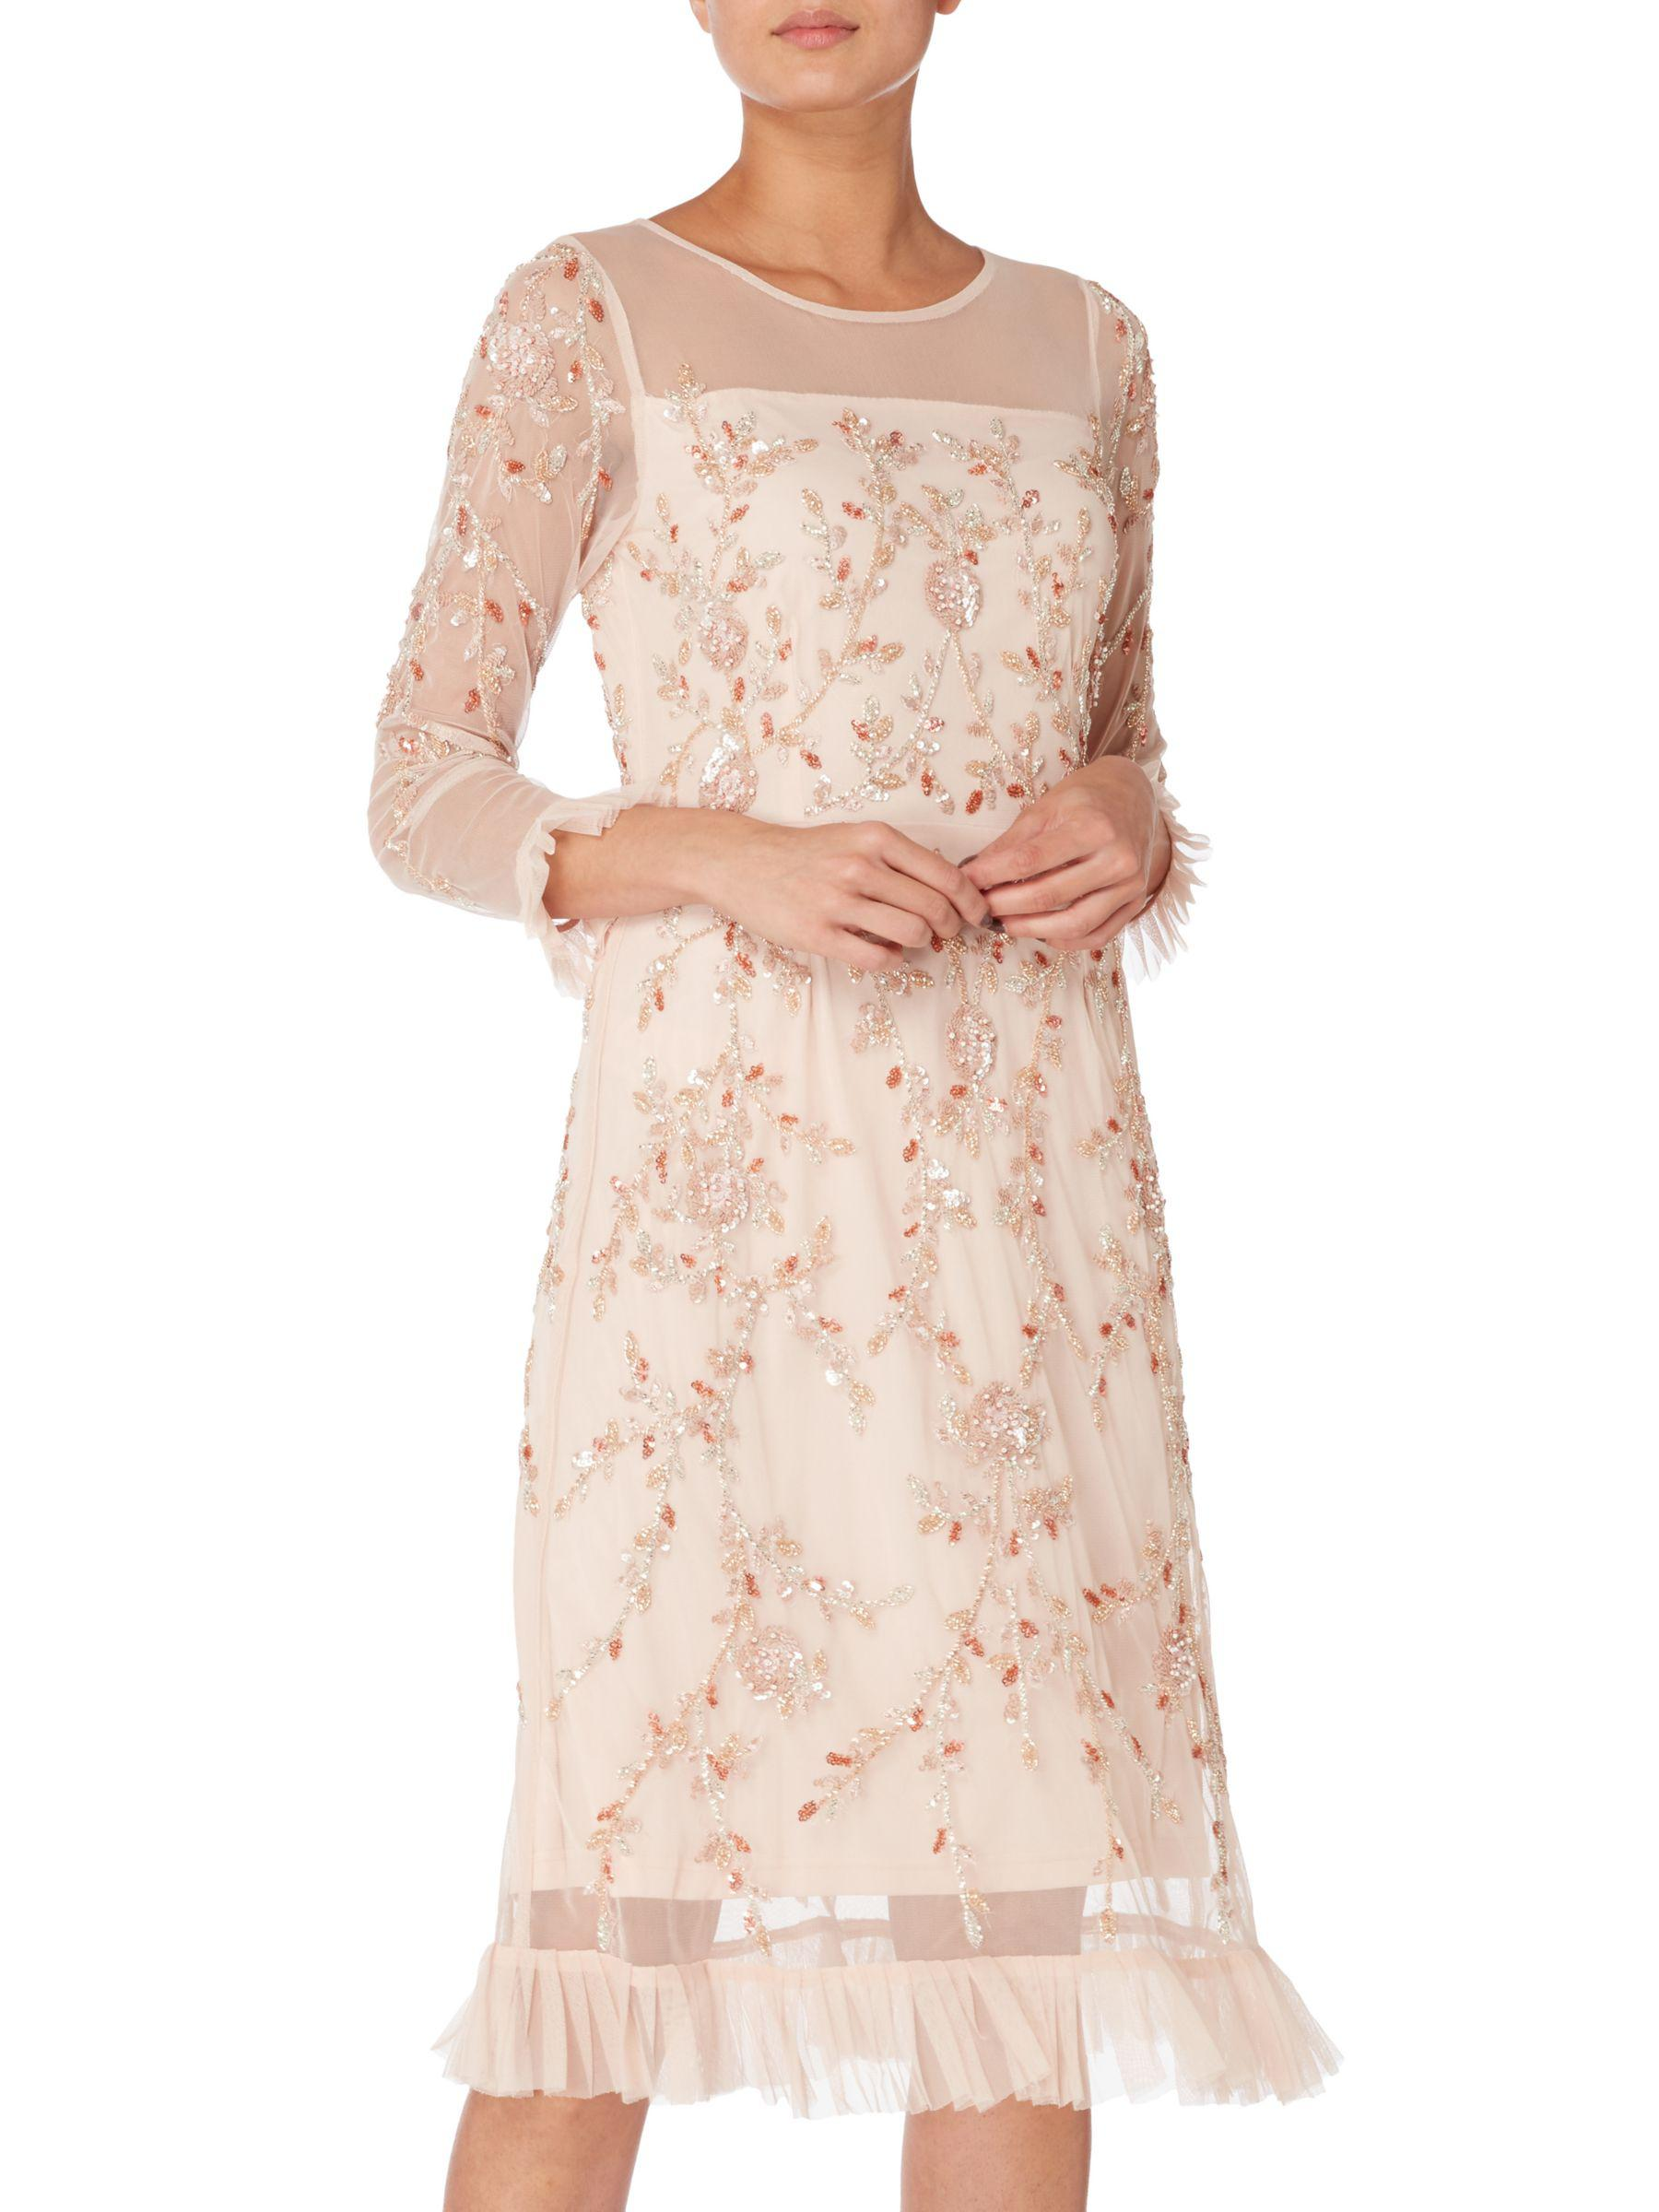 ab5cf25a5dcc Raishma Floral Embellished Frill Dress in Pink - Lyst